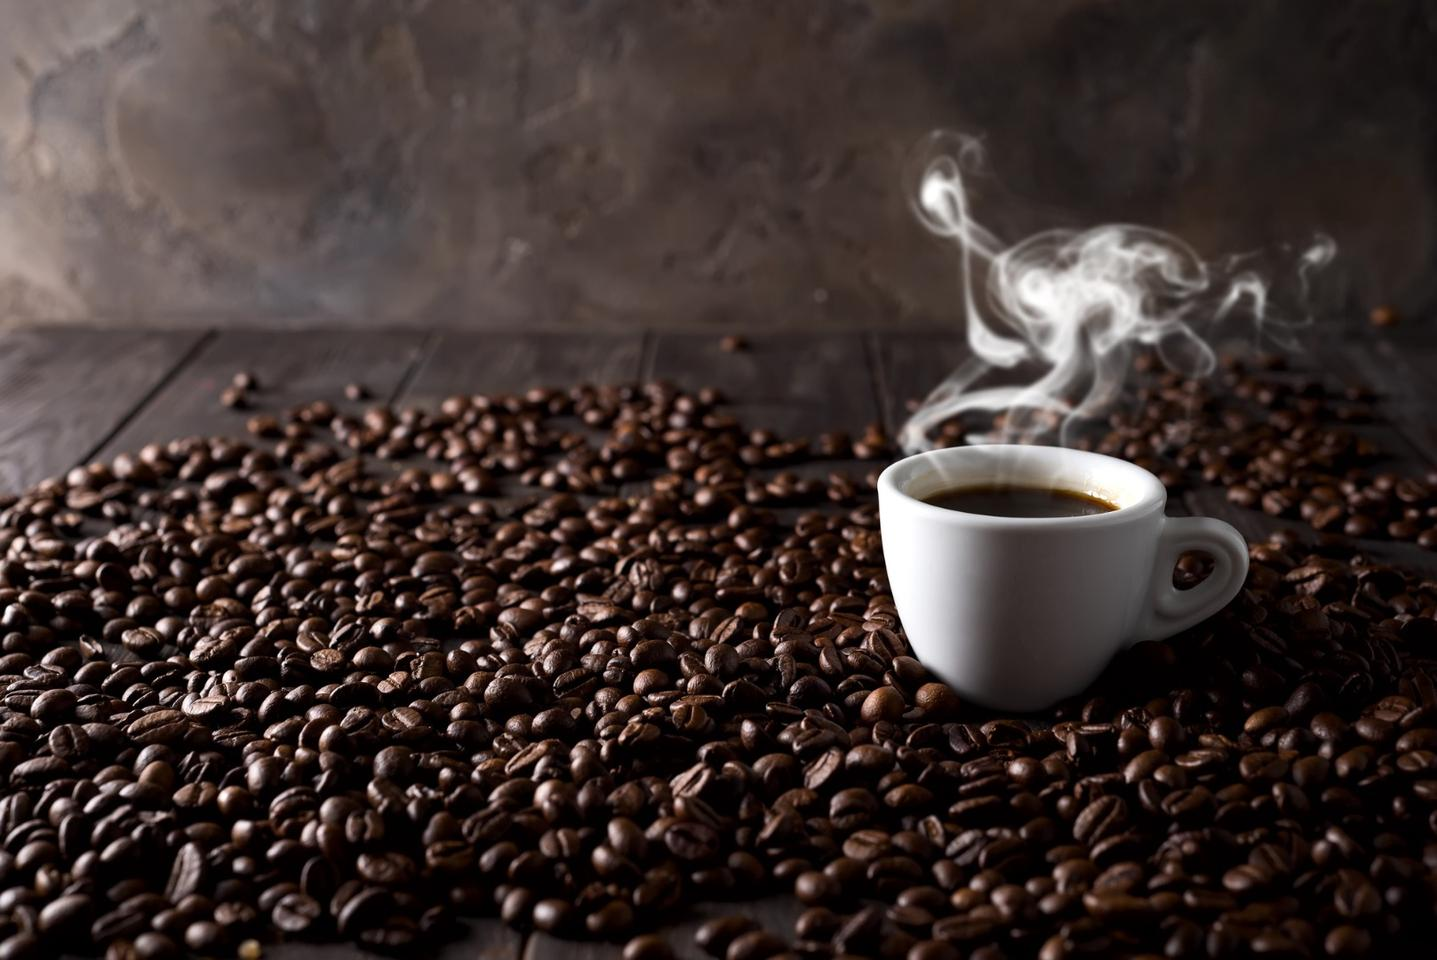 A compound called EHT may be a vital player in the neurological protections conferred by coffee